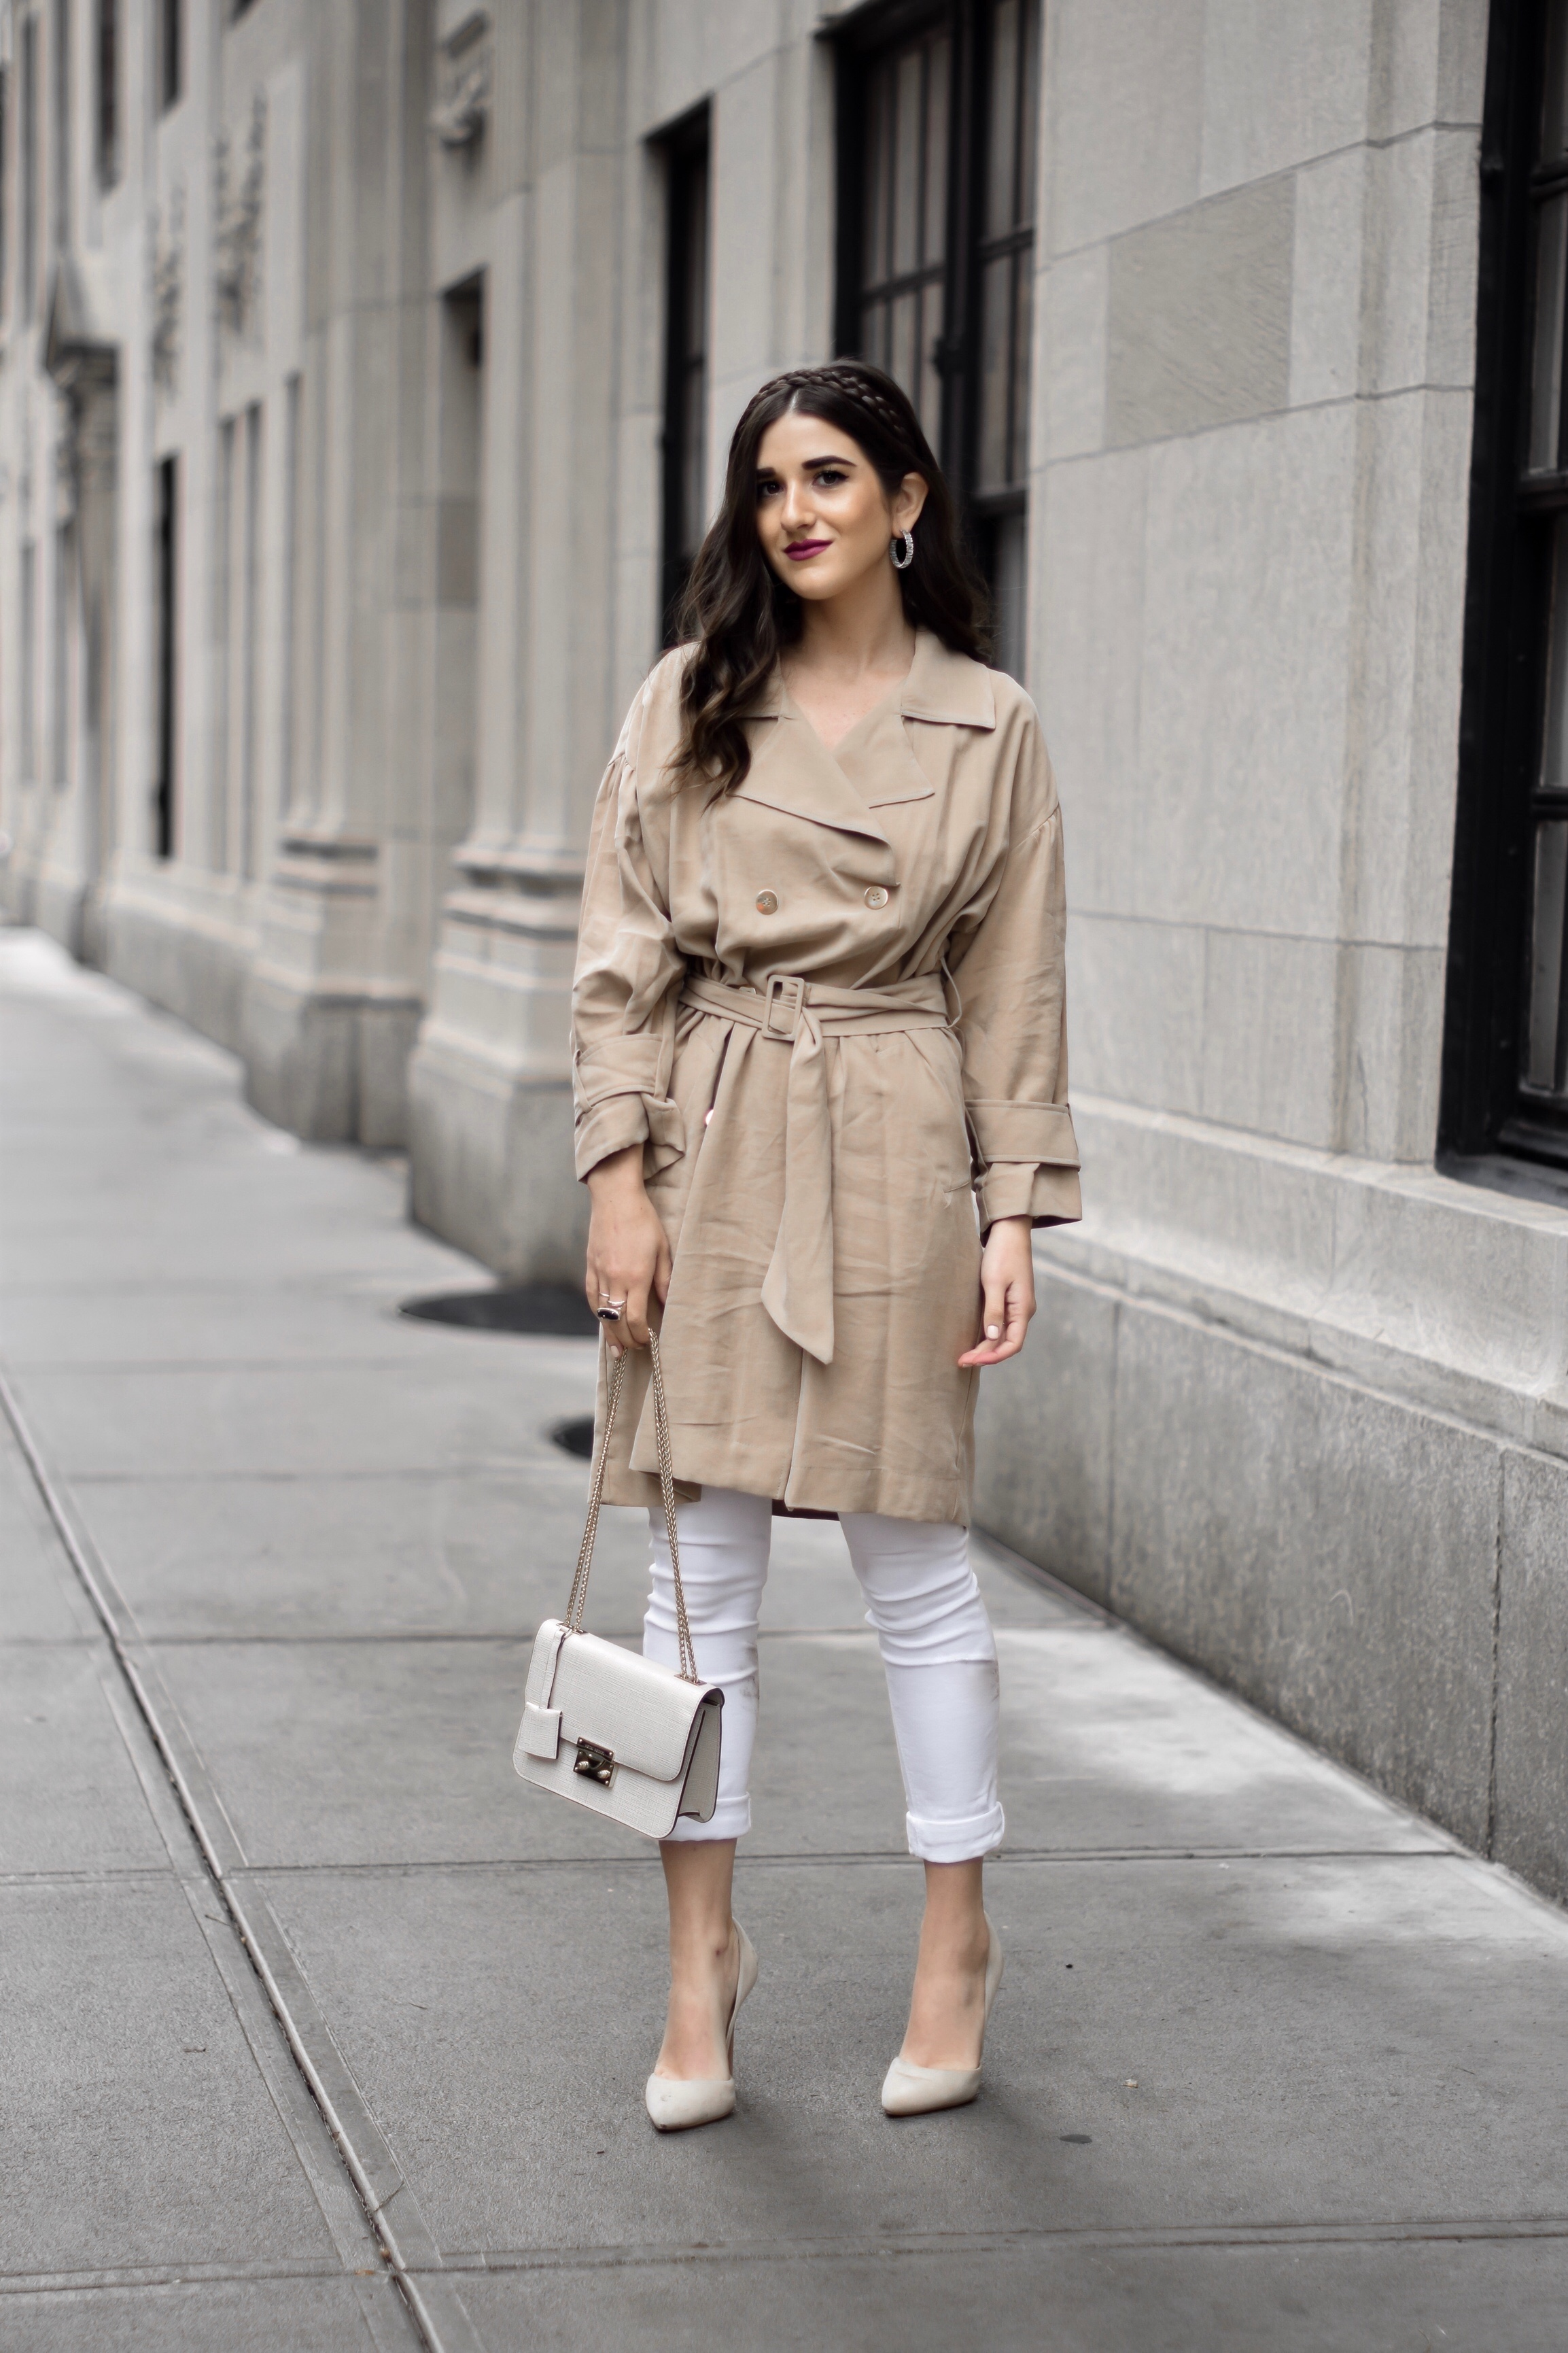 All About Me Trench Coat Dress White Jeans Esther Santer Fashion Blog NYC Street Style Blogger Outfit OOTD Trendy Braid Headband Nude Heels Steve Madden Zara Wear Shopping Sale Melissa Lovy Baby Serena Hoops Shoes Fall  Look Buy Henri Bendel Bag Purse.jpg